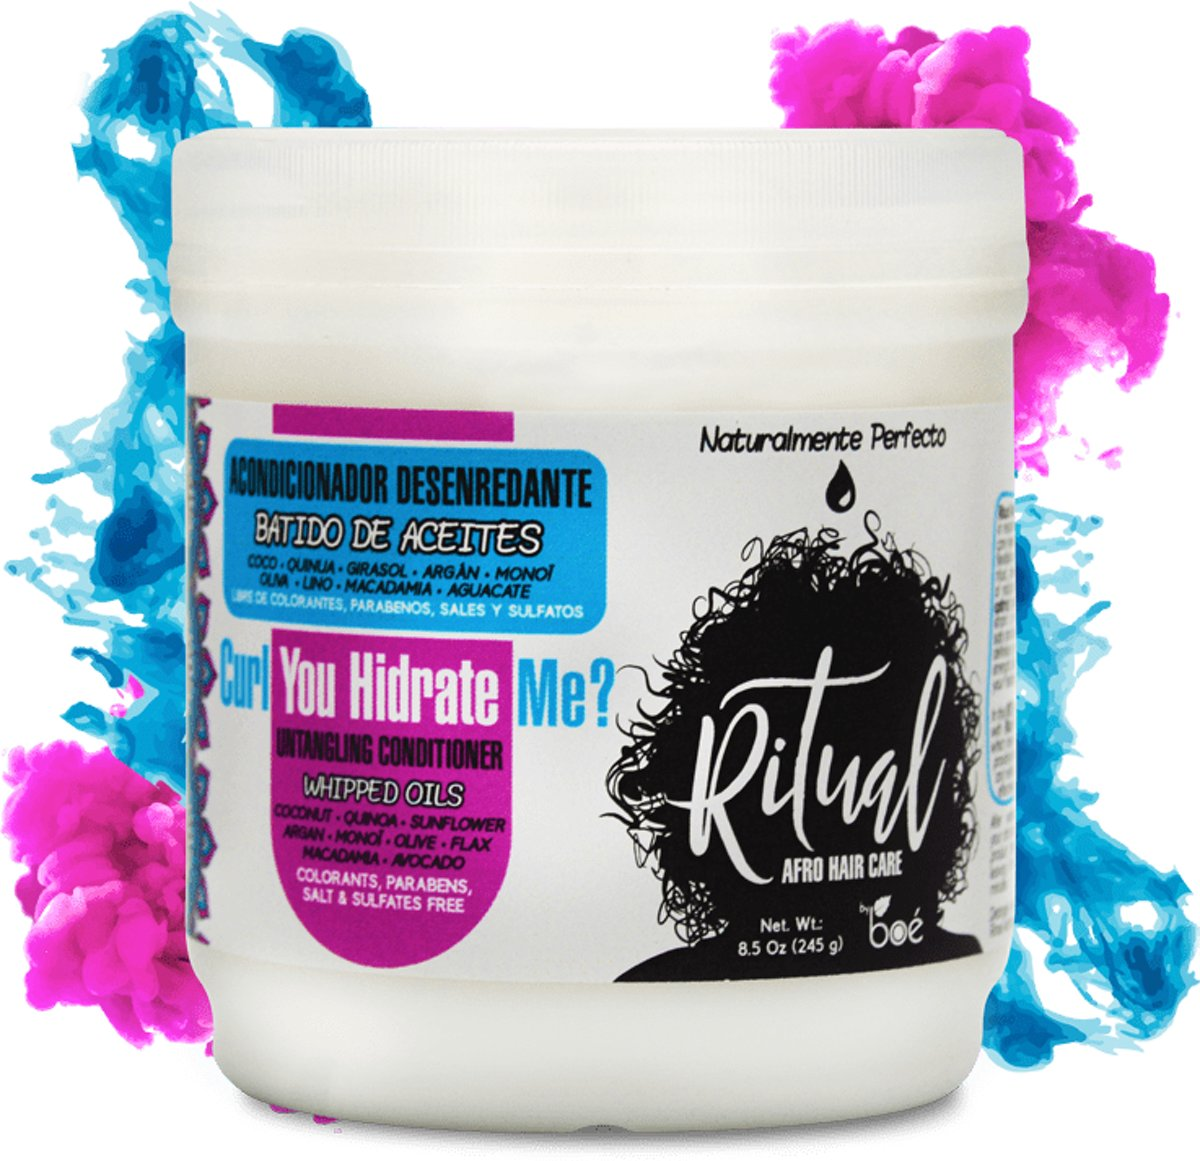 Ritual Curl You Hidrate Me Untangling Conditioner 245gr